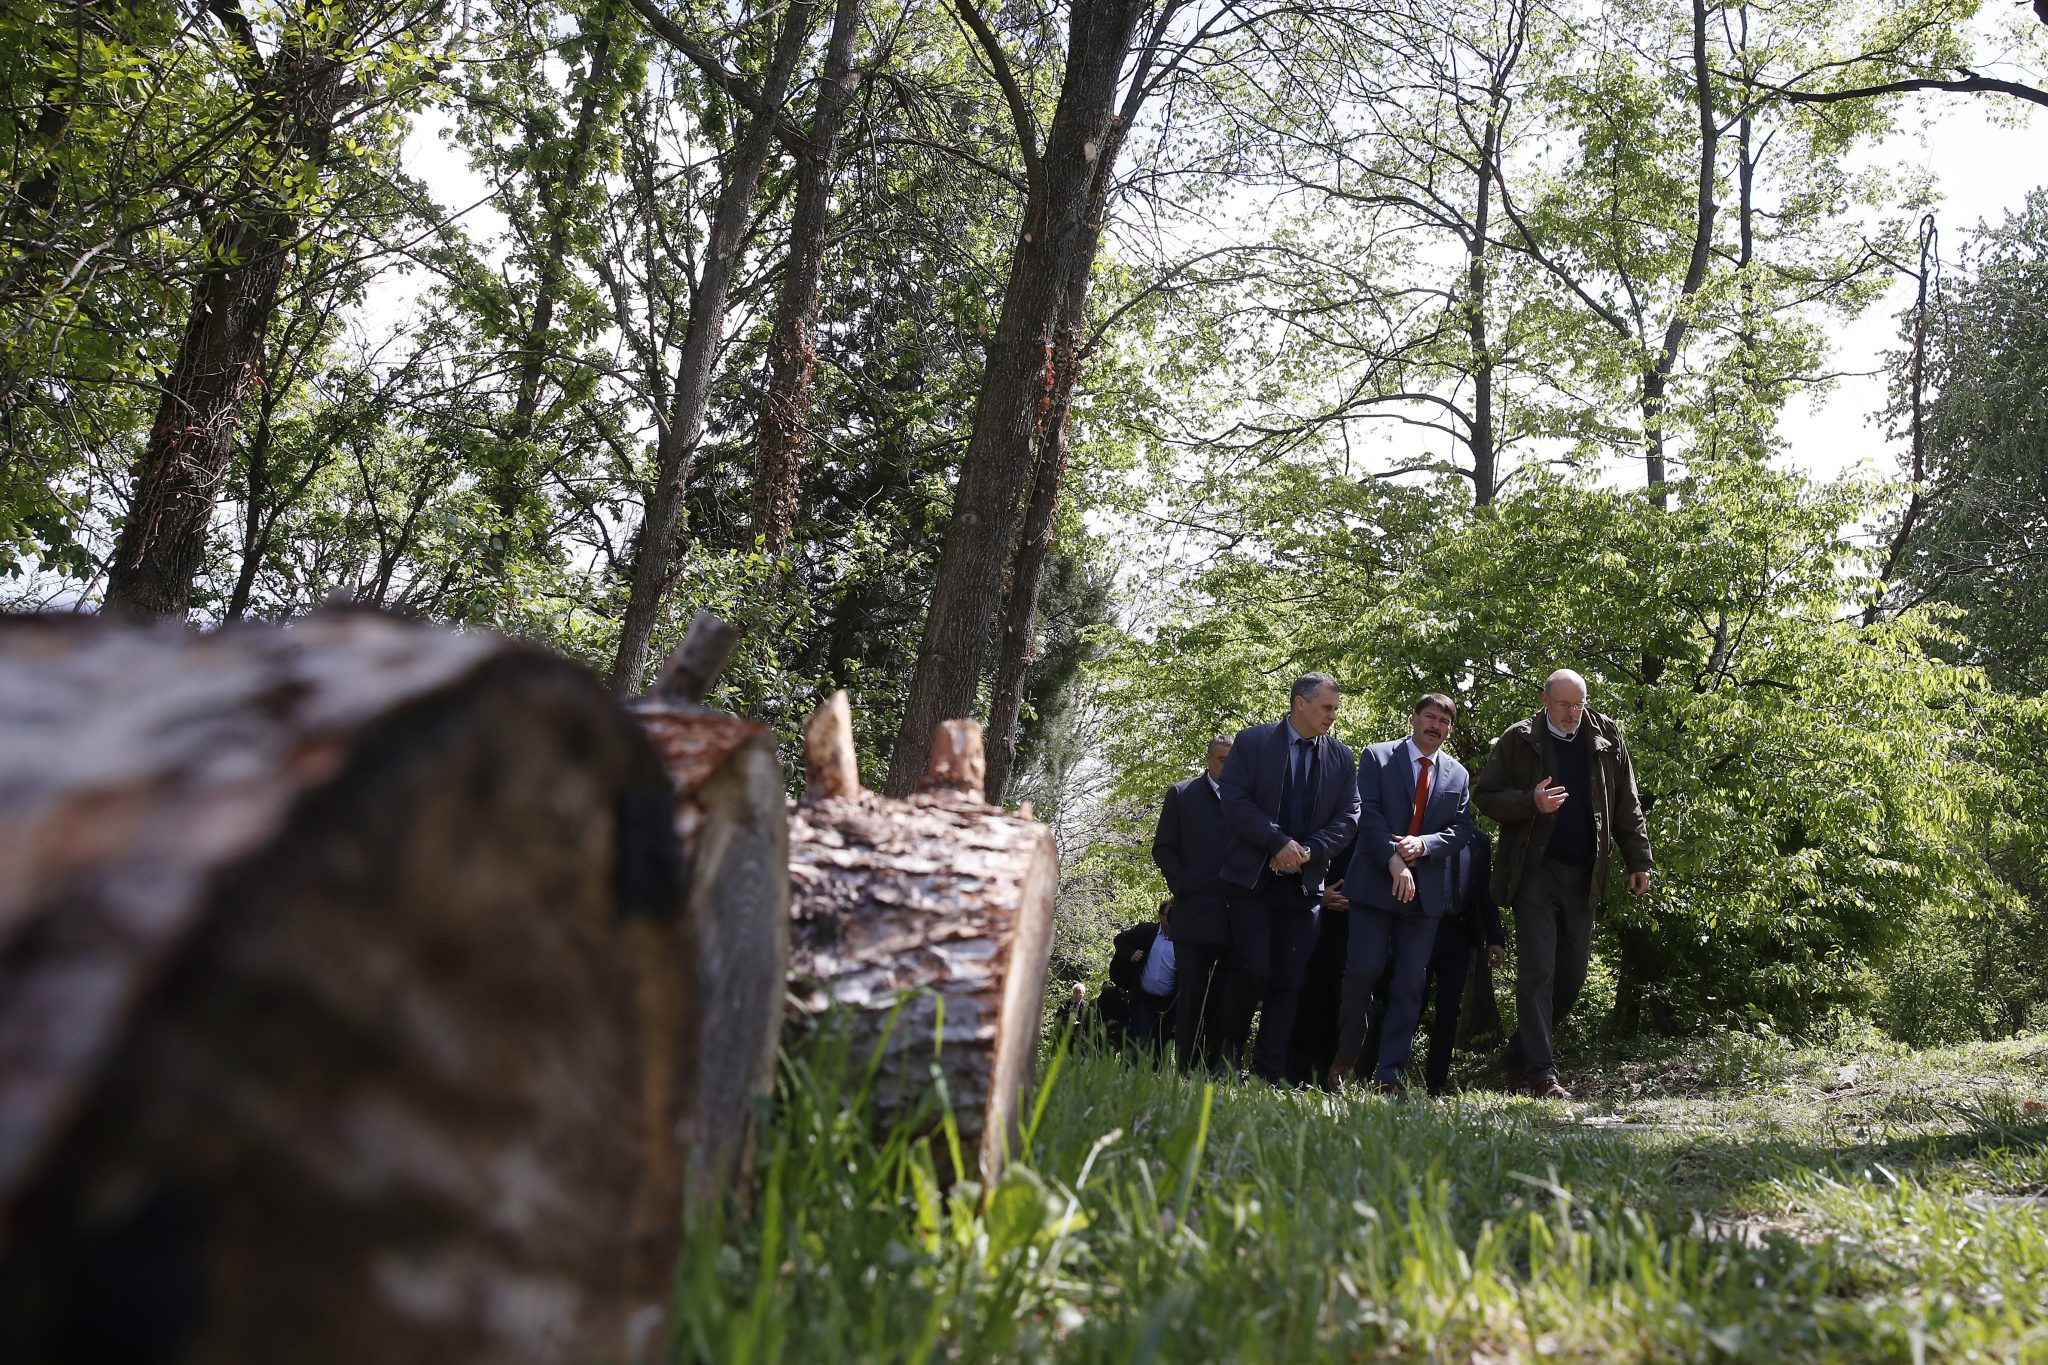 President Áder: Hungary Doubles Forests in Past 100 Years post's picture